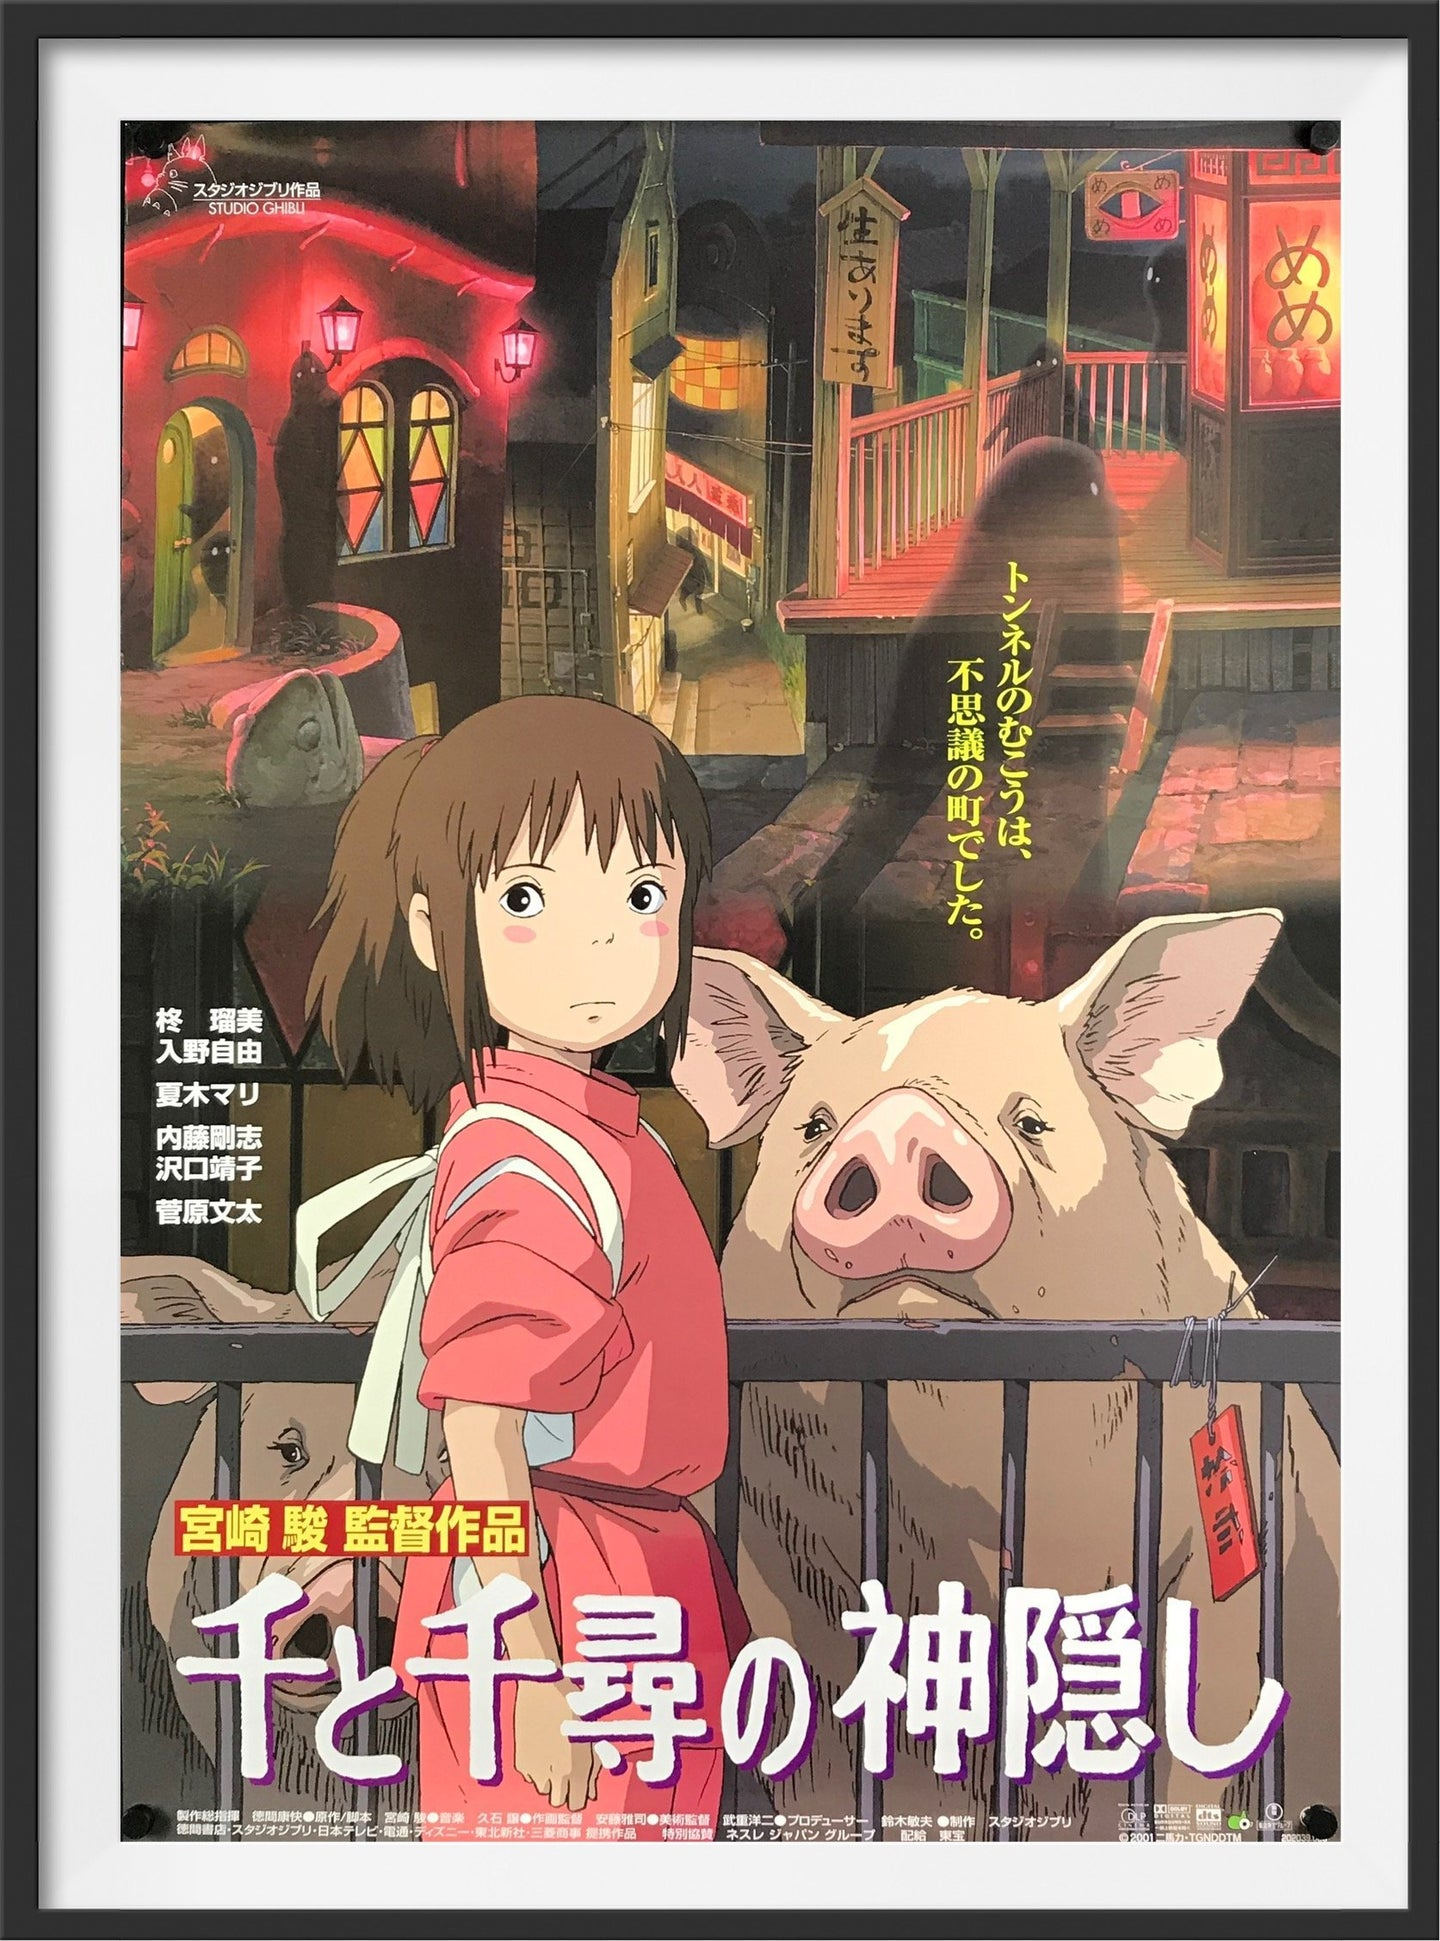 An original movie poster for the Studio Ghibli film Spirited Away